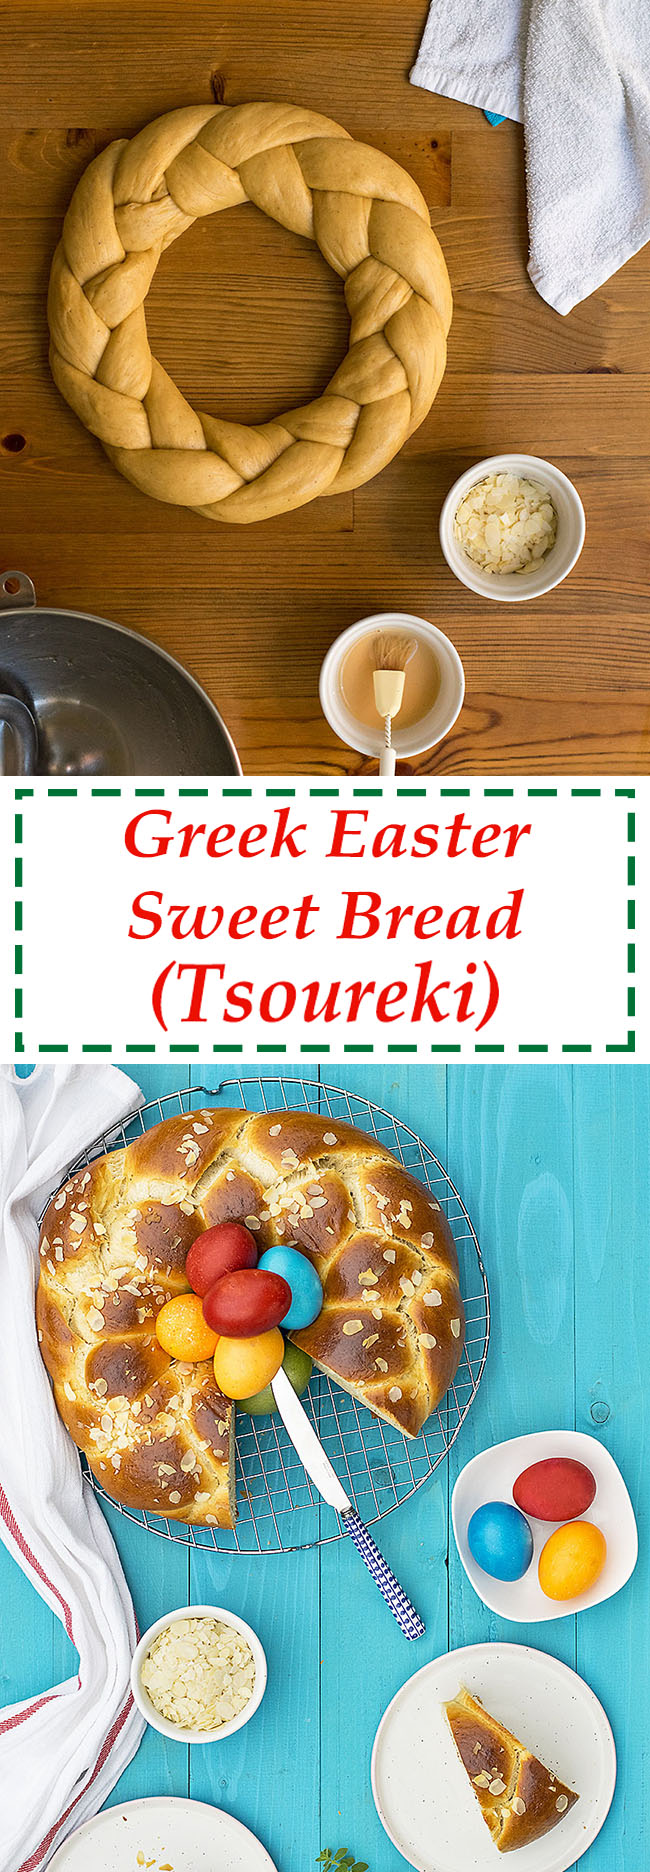 Greek Easter sweet bread with olive oil (Tsoureki) 7